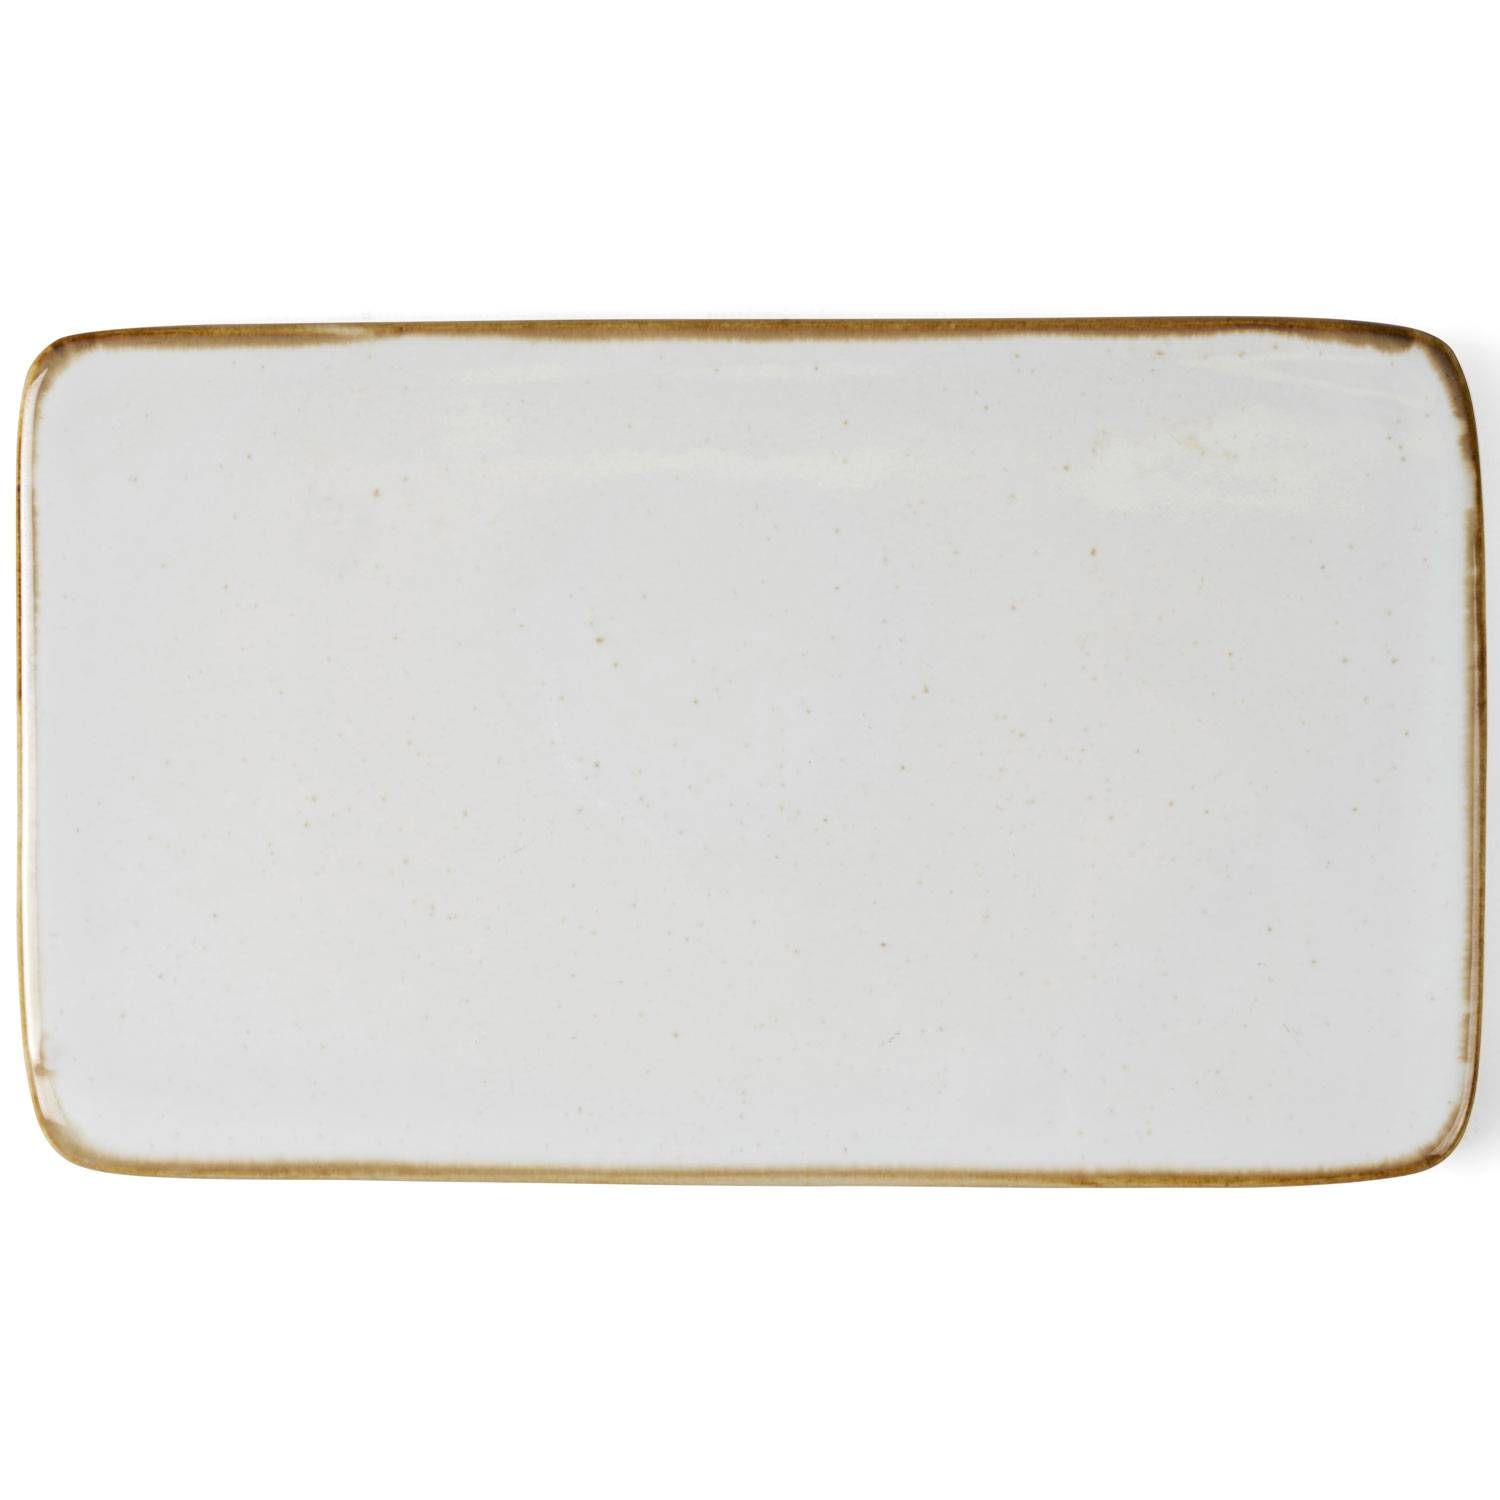 Bitz Bitz Serving Plate 22x12 cm, Off-White